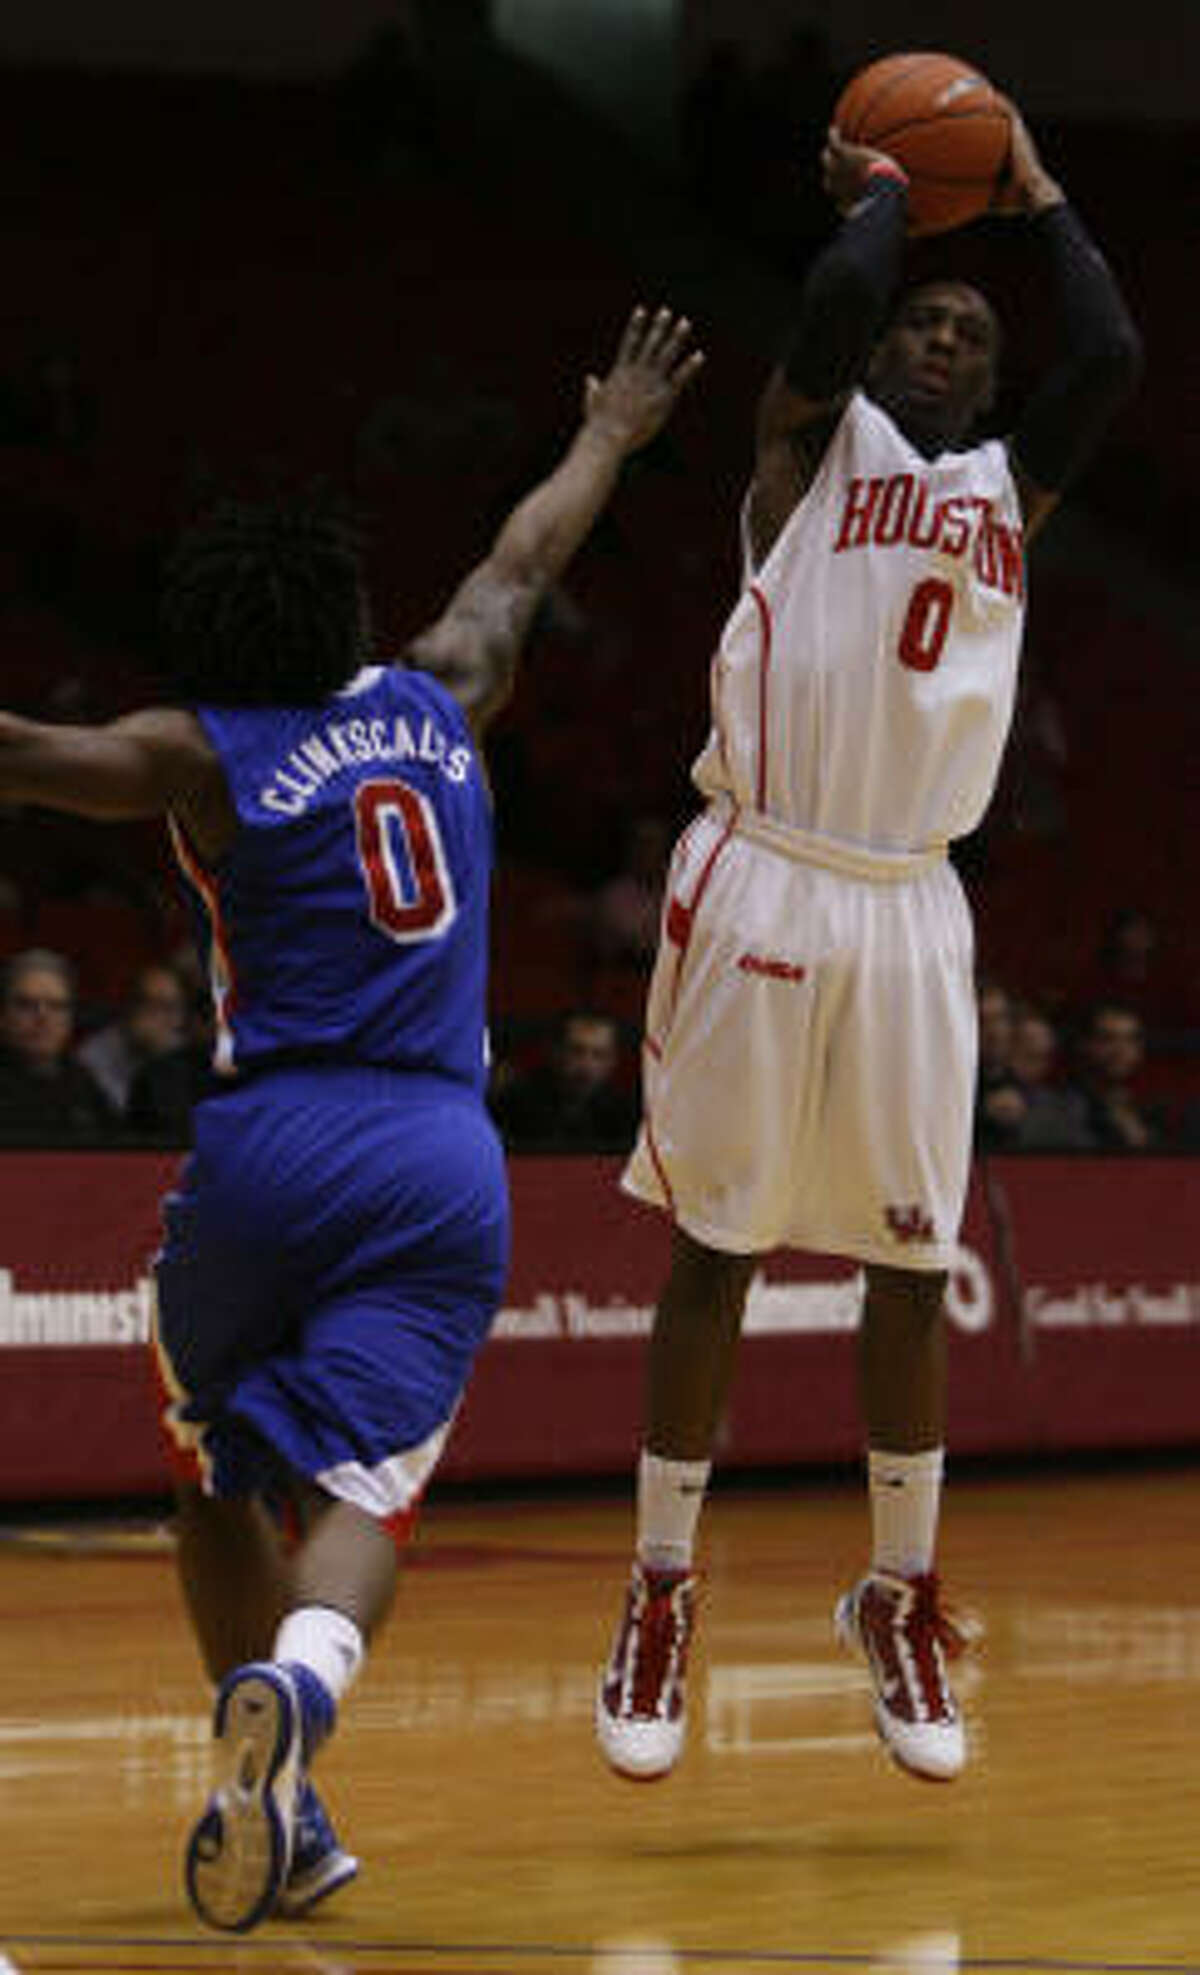 UH guard Kelvin Lewis scored a season-high 29 points to lead the Cougars to a 66-60 win over Conference USA rival SMU on Saturday at Hofheinz Pavilion.